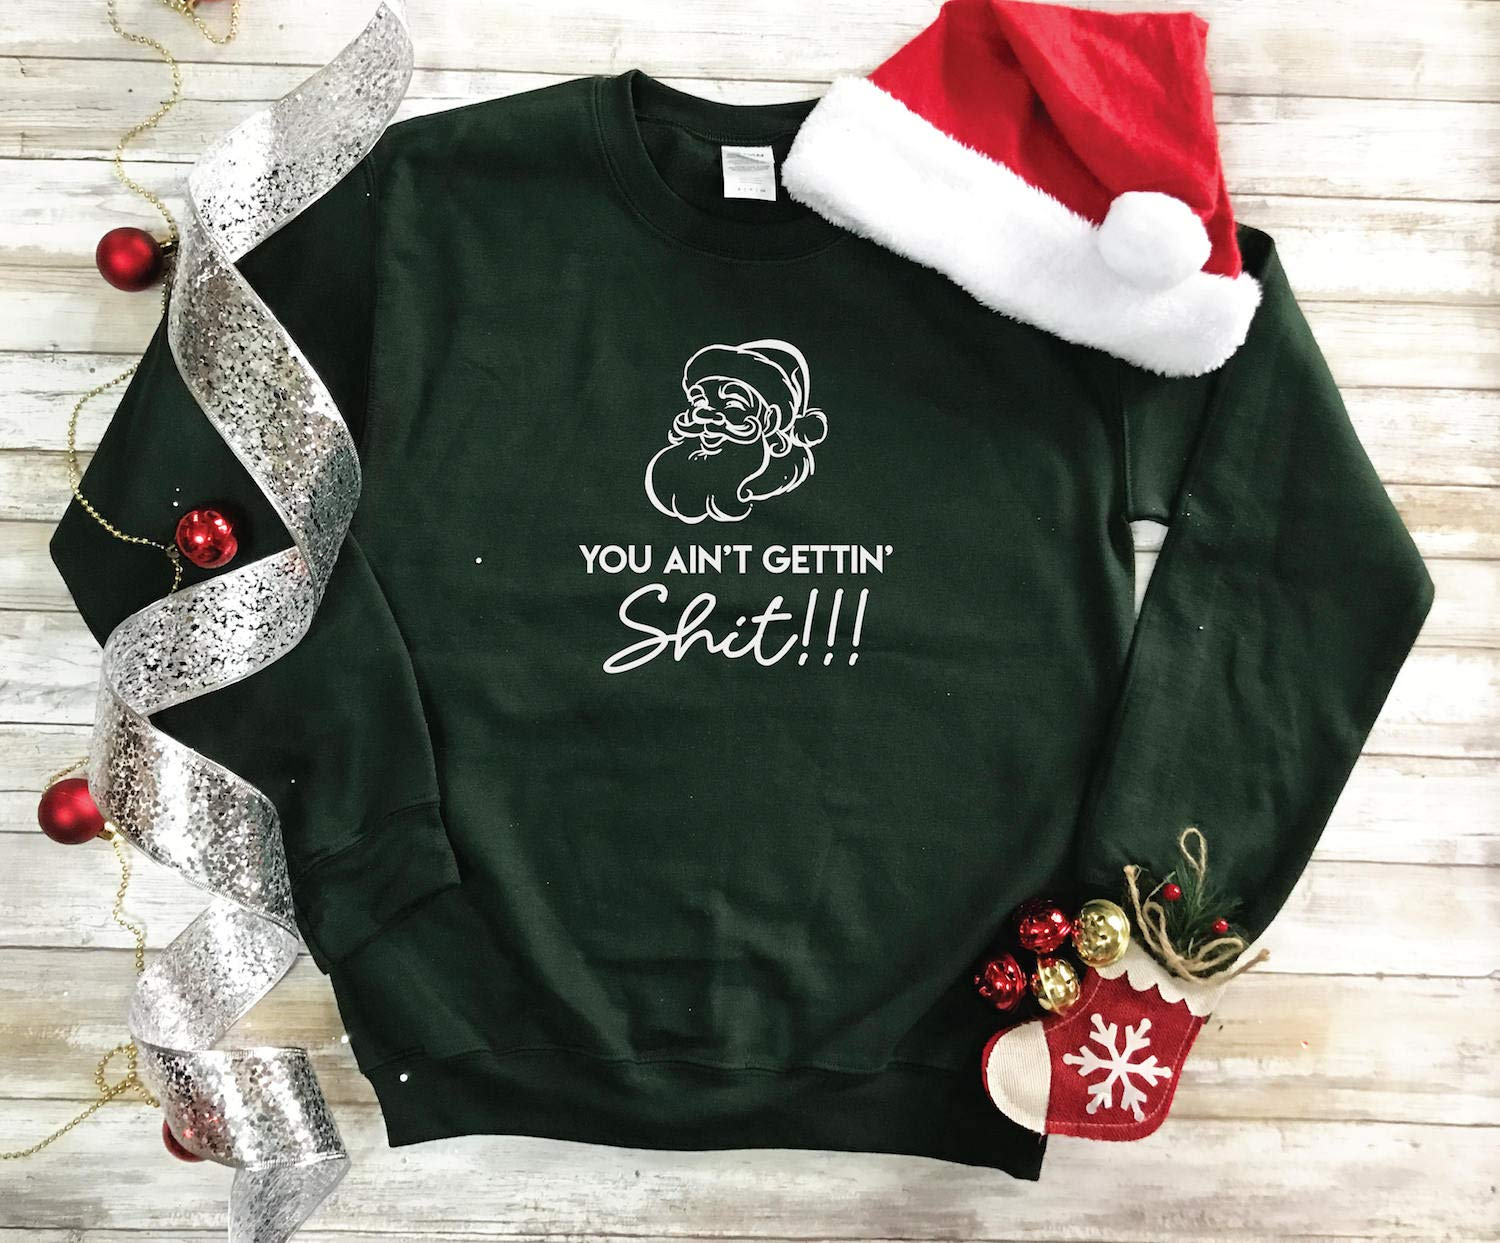 Crewneck You Ain't Getting Shit Sweatshirt. Pullover, Unisex Sweatshirt, Office Christmas Gift. Santa Shirt, Hip Santa Tee, Blogger T-Shirt